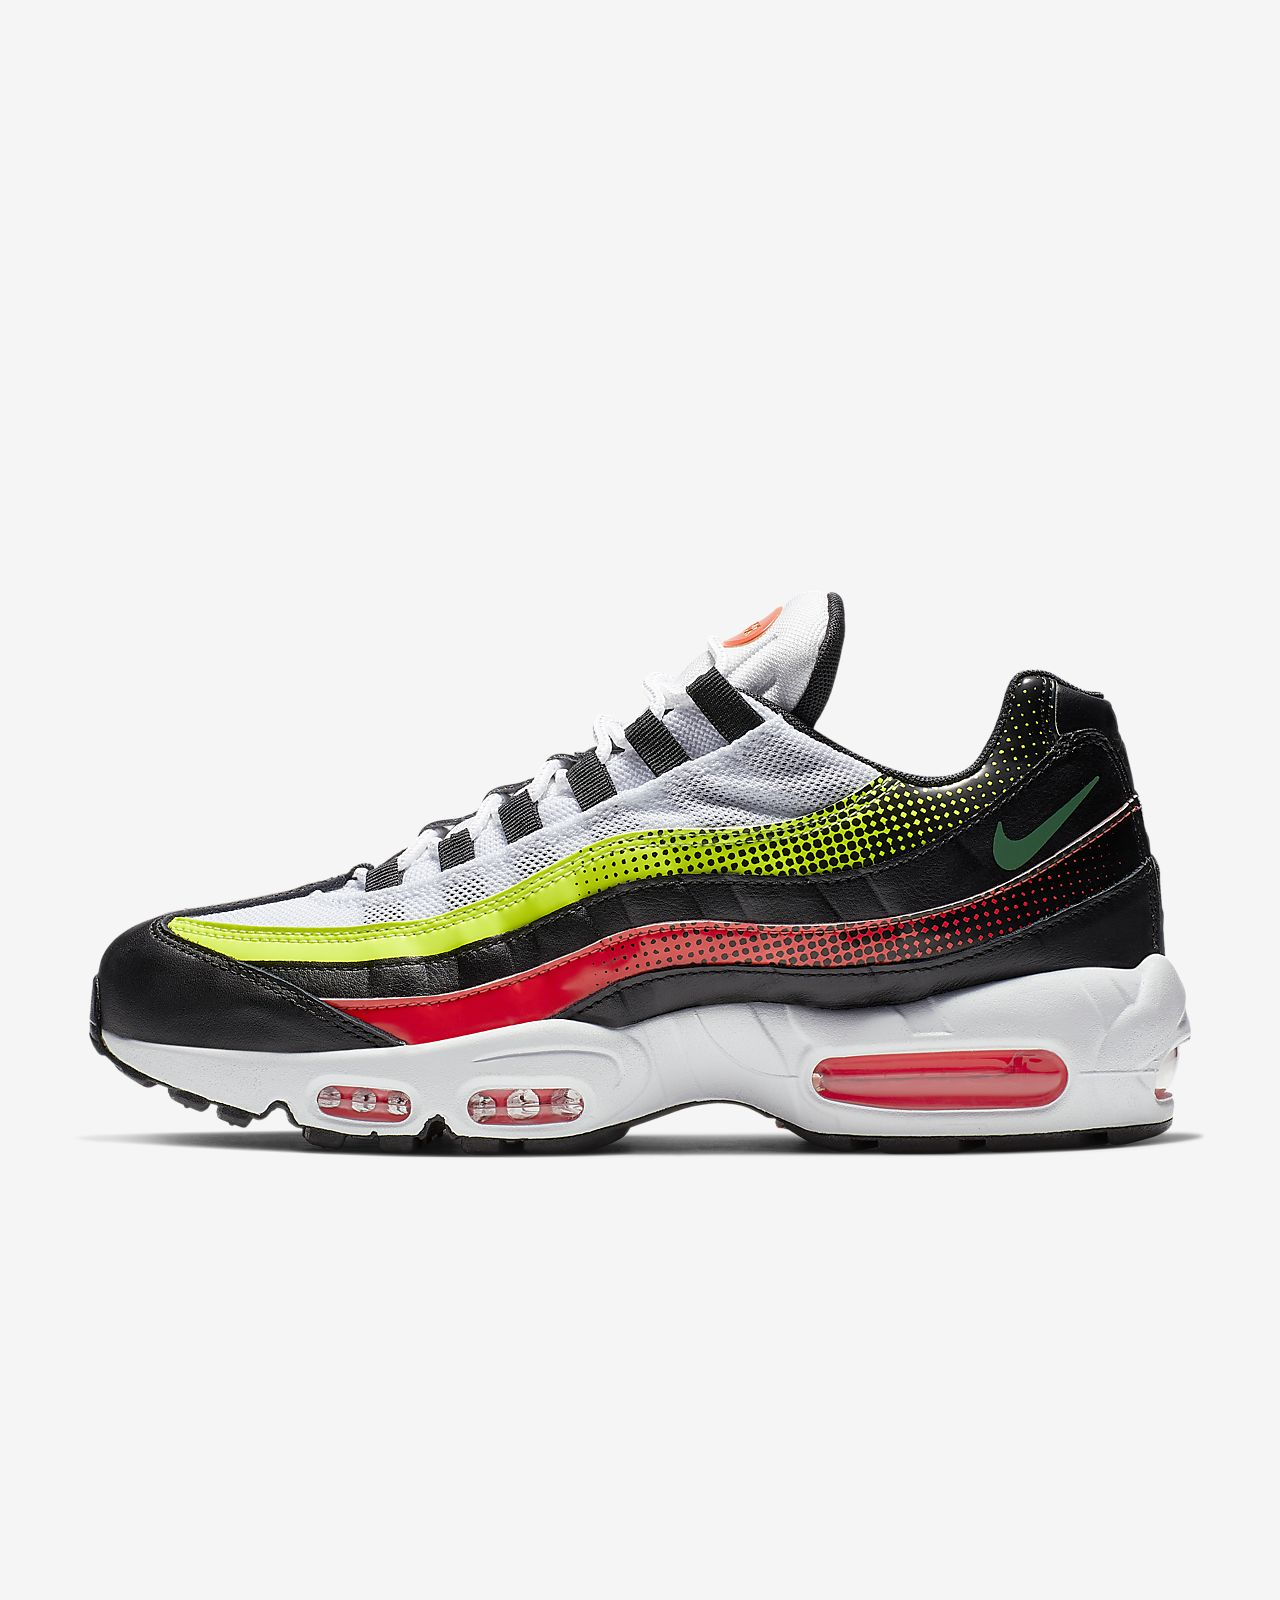 hot sale online 8159d 9d9d9 ... Nike Air Max 95 SE Men s Shoe